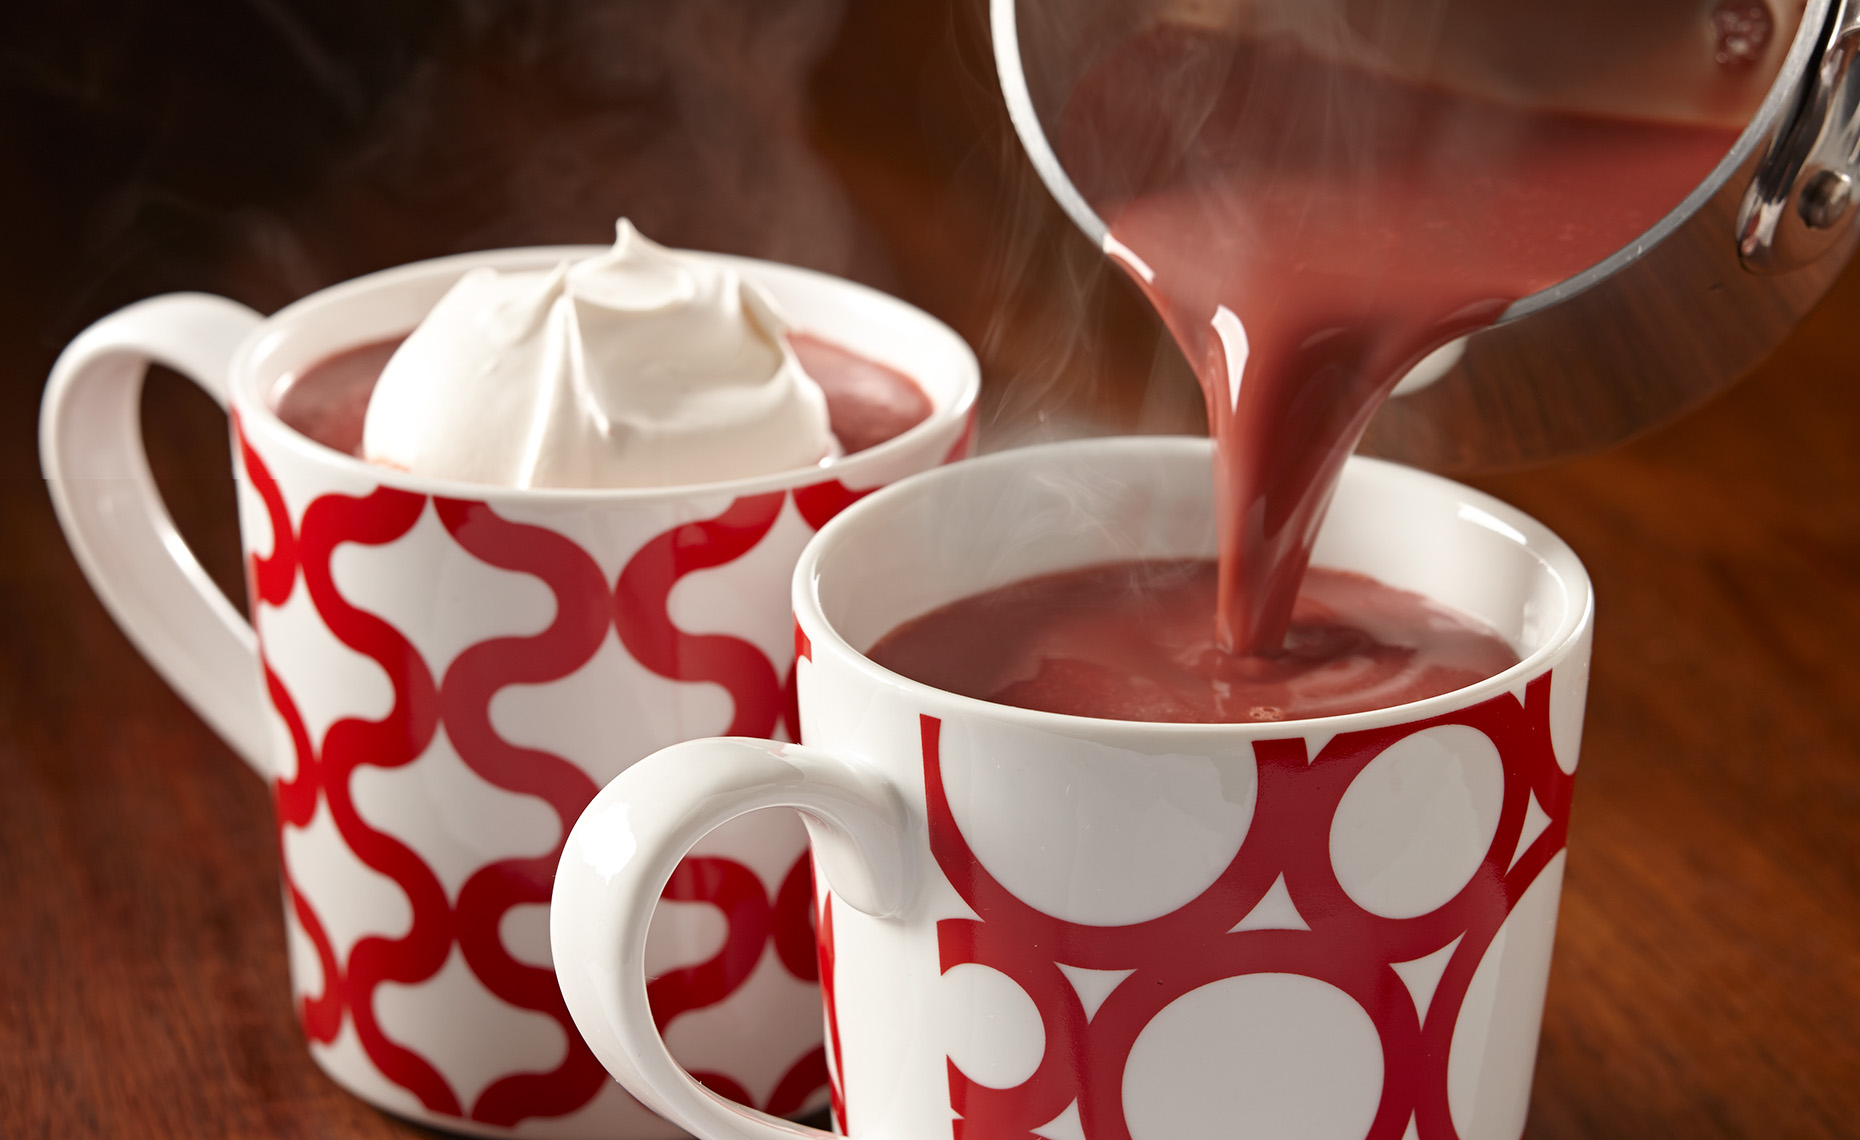 Food Photographer, Cake Photography, Ice Cream Photography, Dessert Photography | Pohuski Studios,  Red Velvet Hot Cocoa